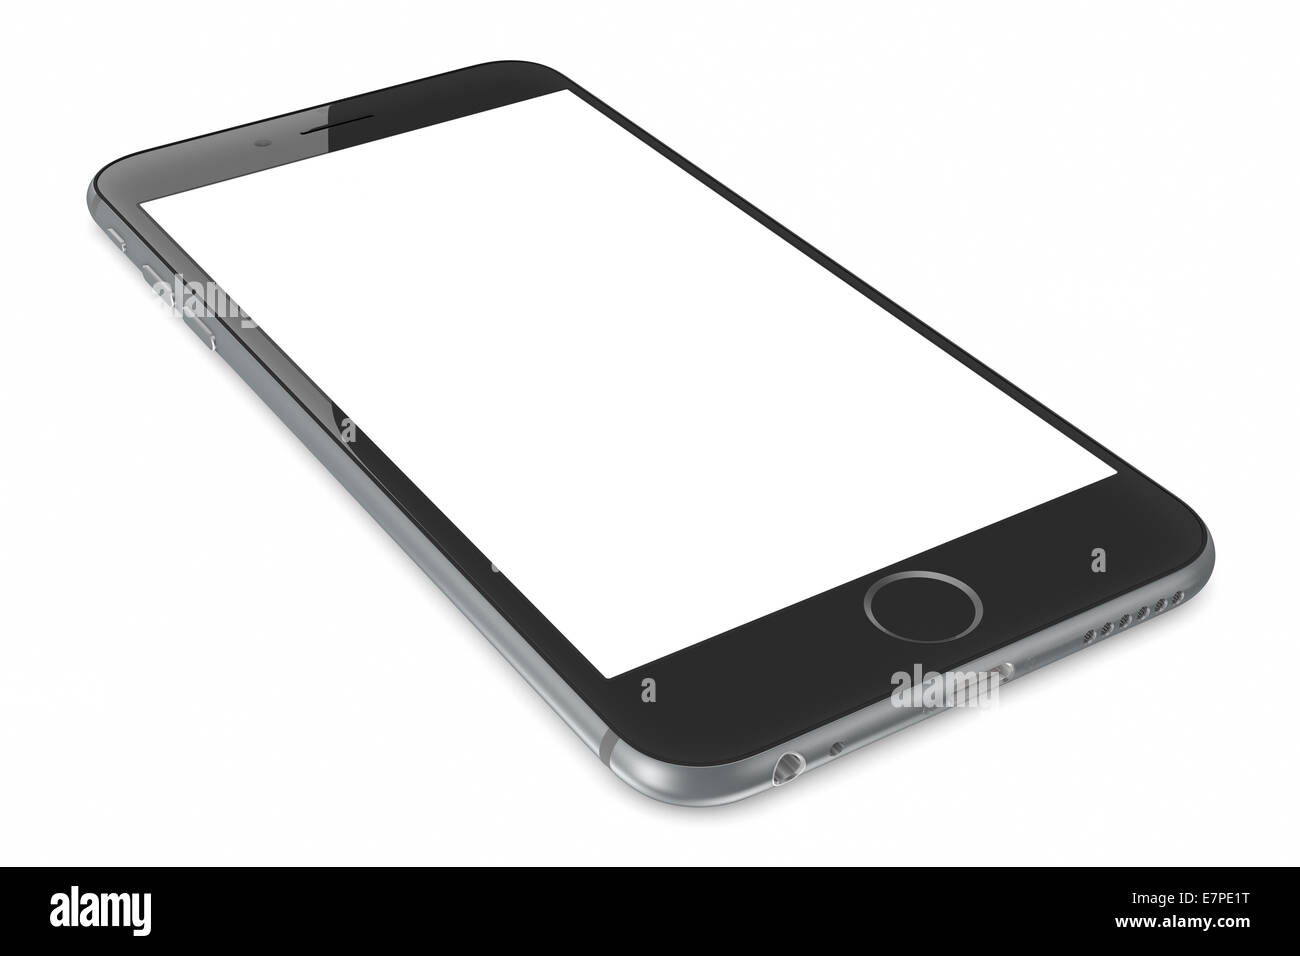 Apple Space Gray iPhone 6 Plus with white blank screen. - Stock Image